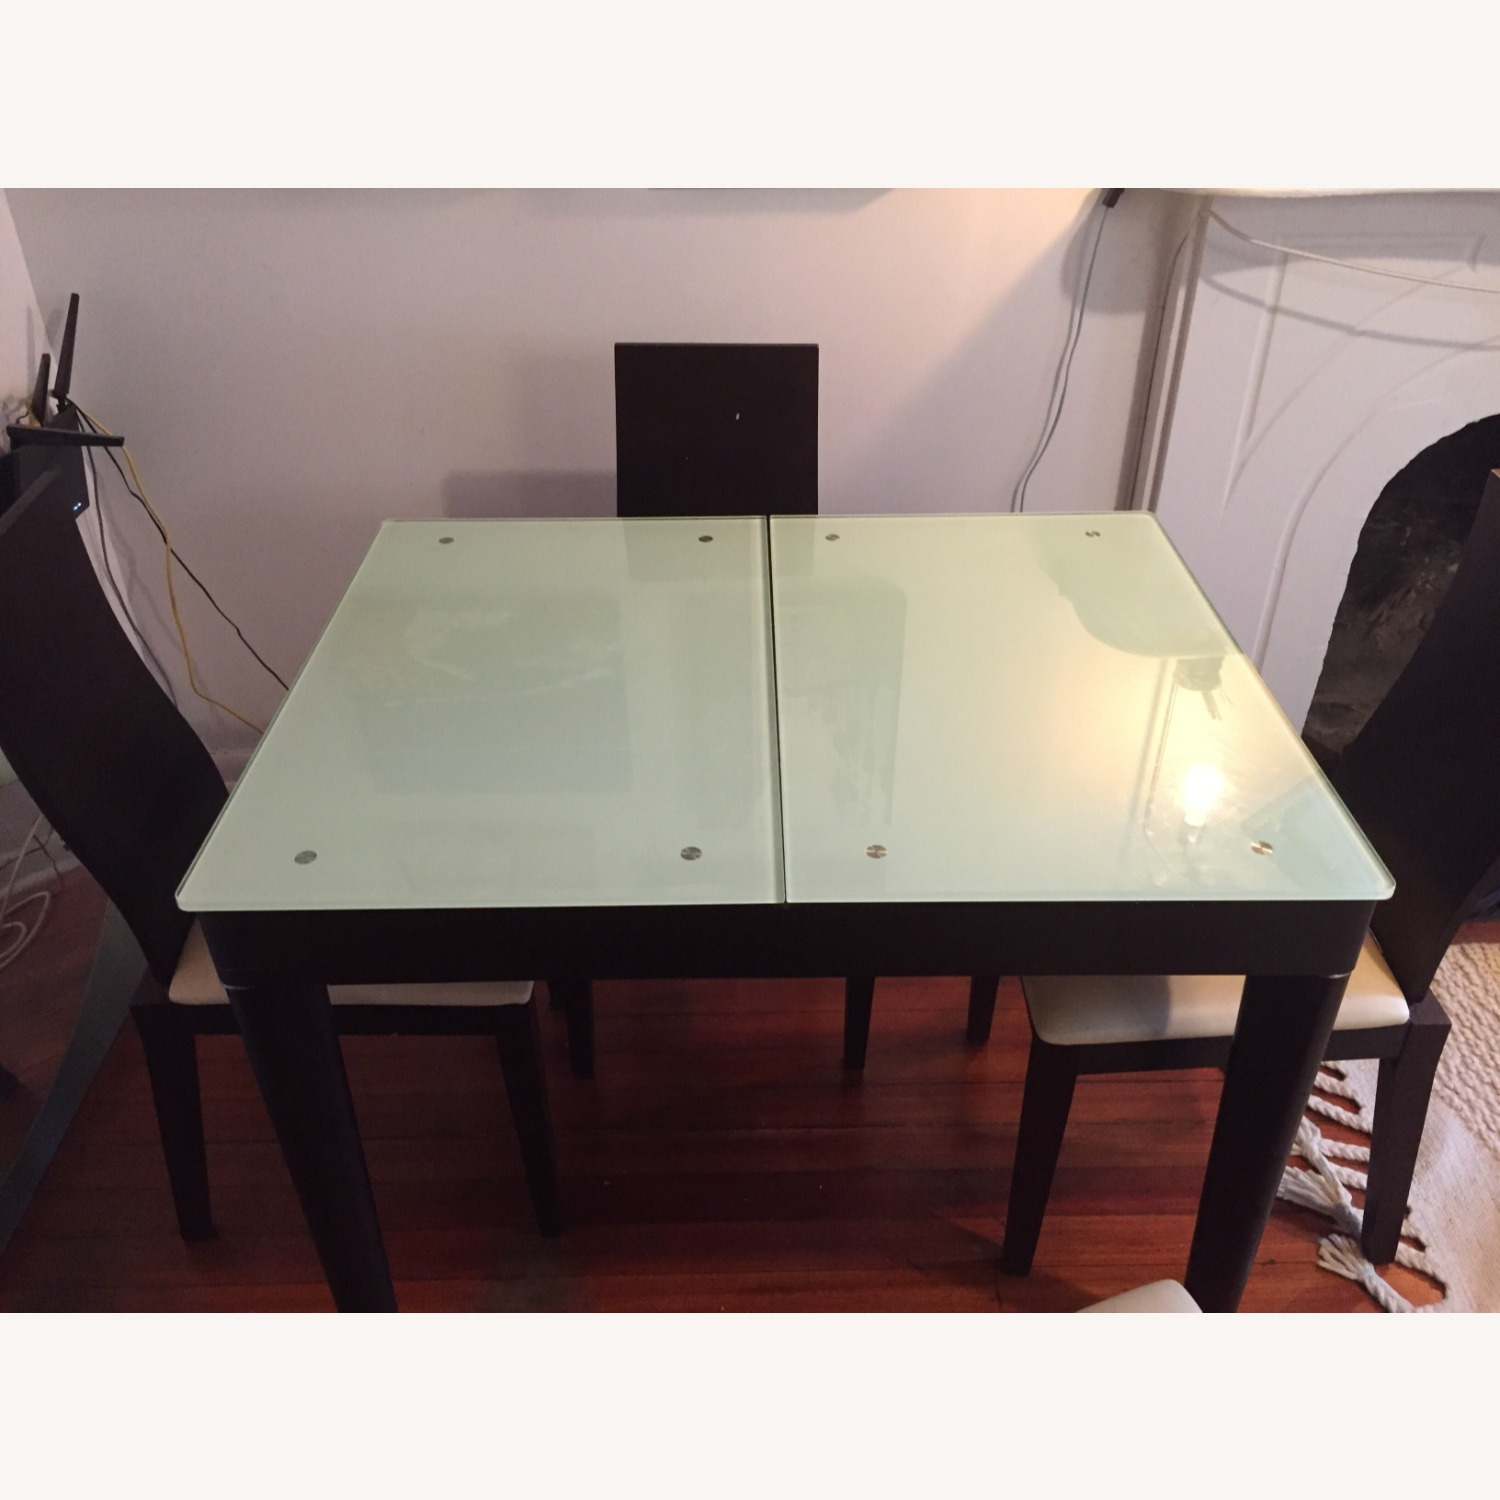 Calligaris Italian Extendable Dining Table Set with 4 Chairs - image-2